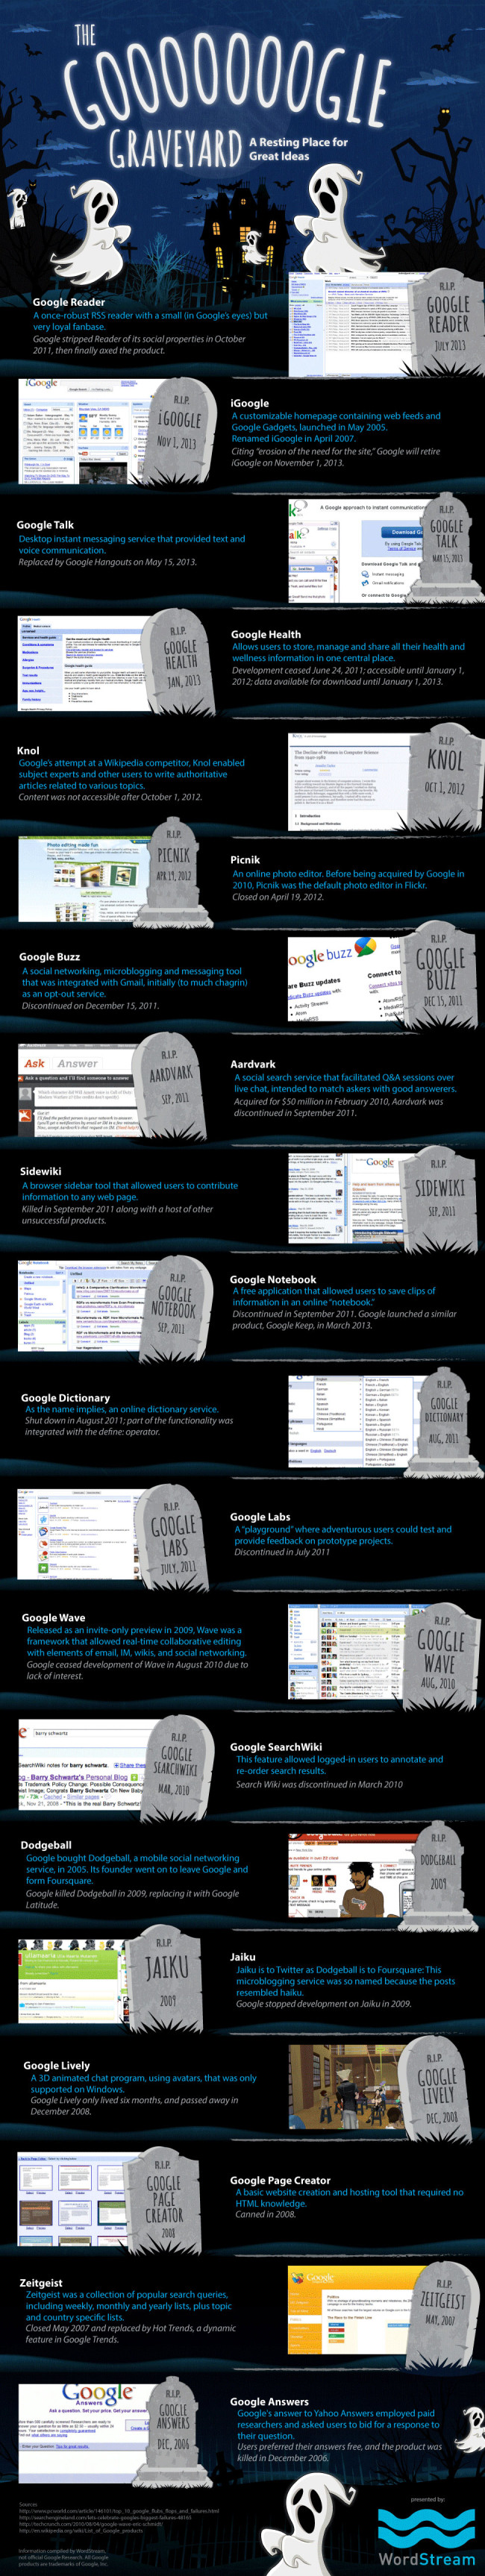 Google Idea Graveyard